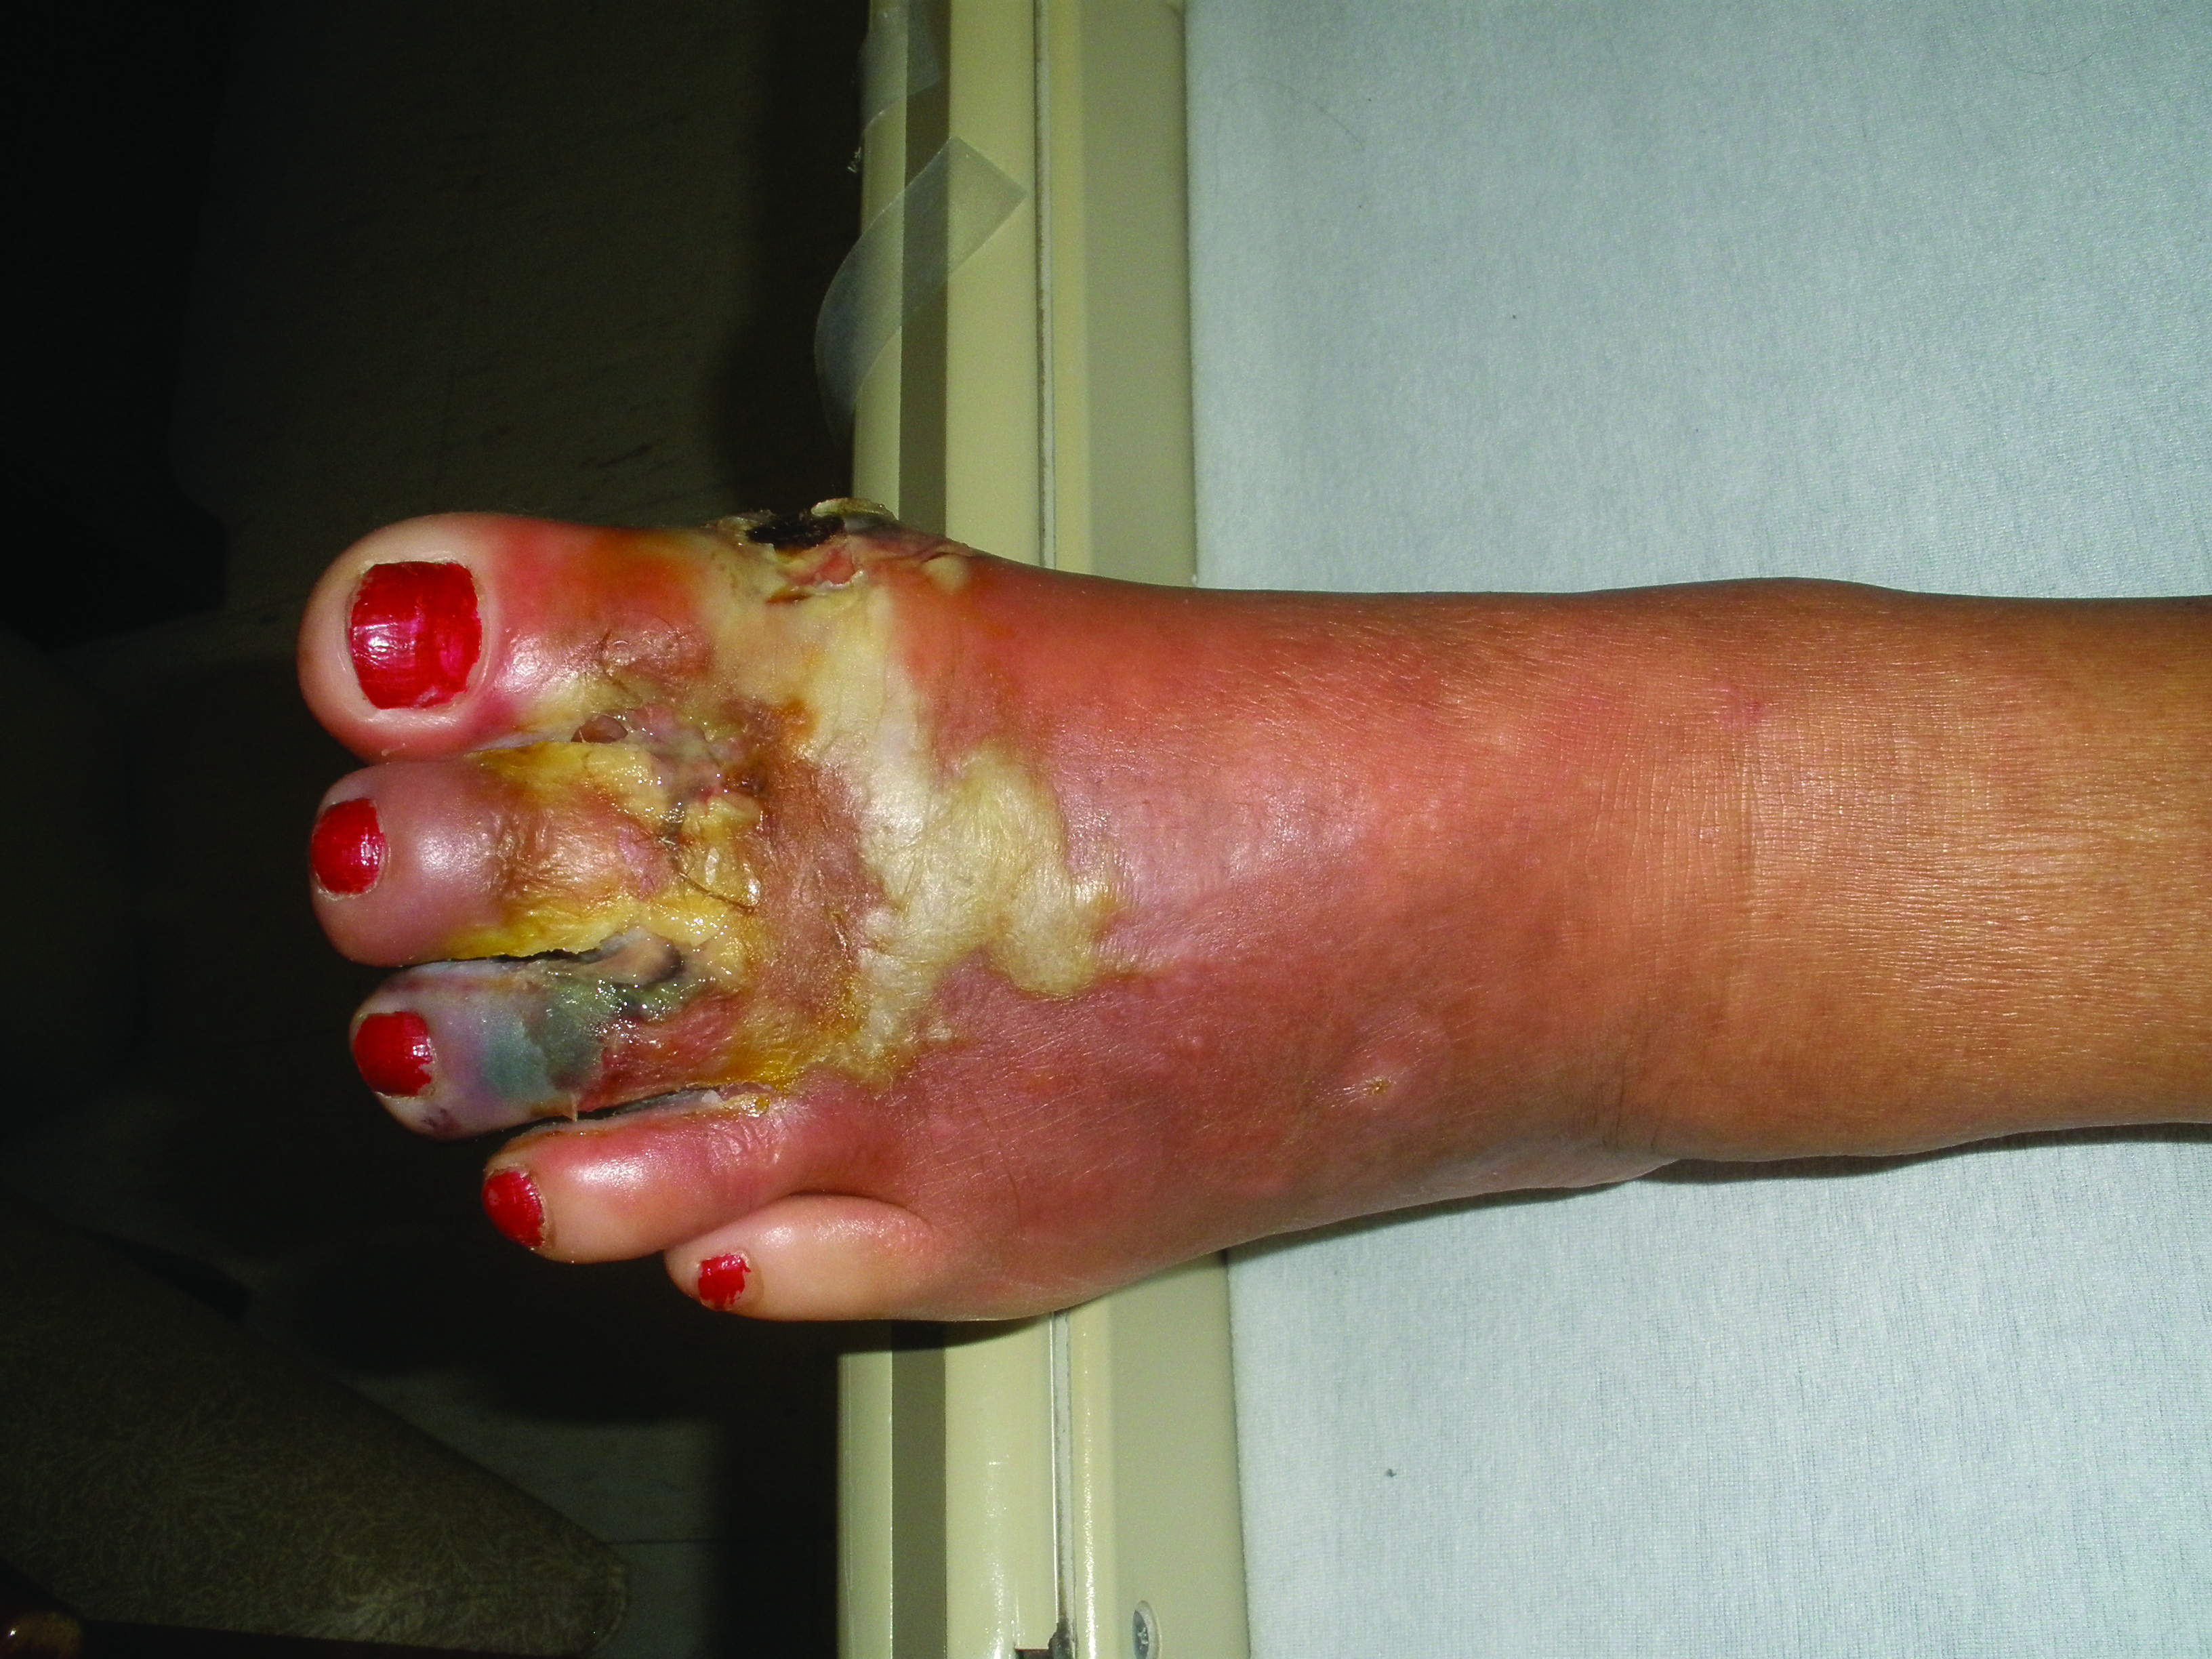 Here is a diabetic foot with a necrotizing infection. All employees of podiatric facilities with a role in infection prevention and control should receive periodic training in infection control and prevention to ensure that they understand and follow the policies and procedures of the facility.